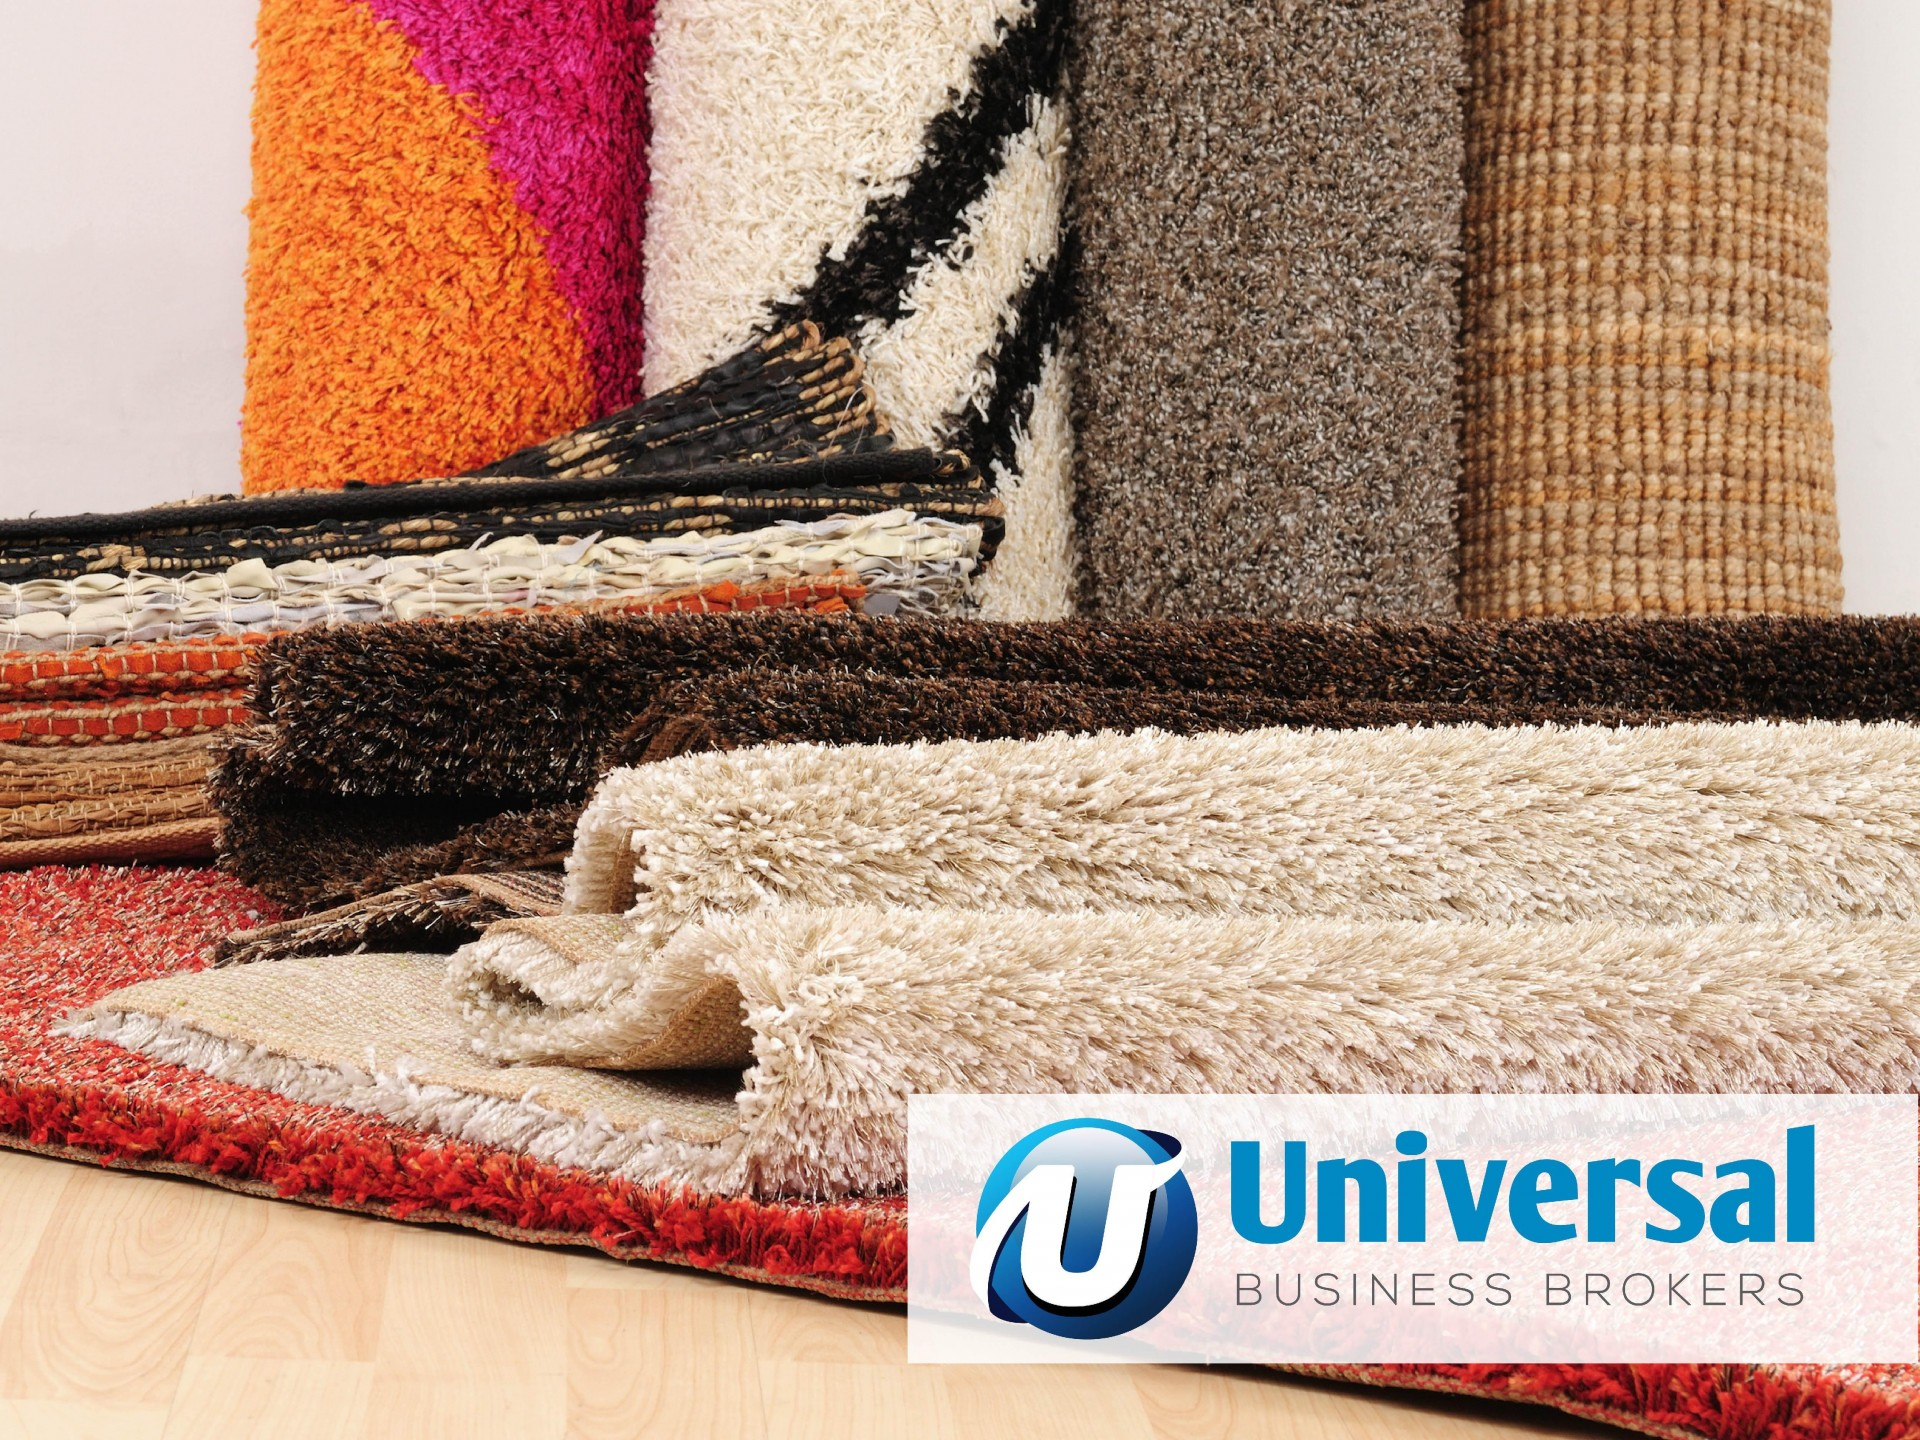 Carpet and Flooring Business for Sale. Profiting $249,122. Financials available.